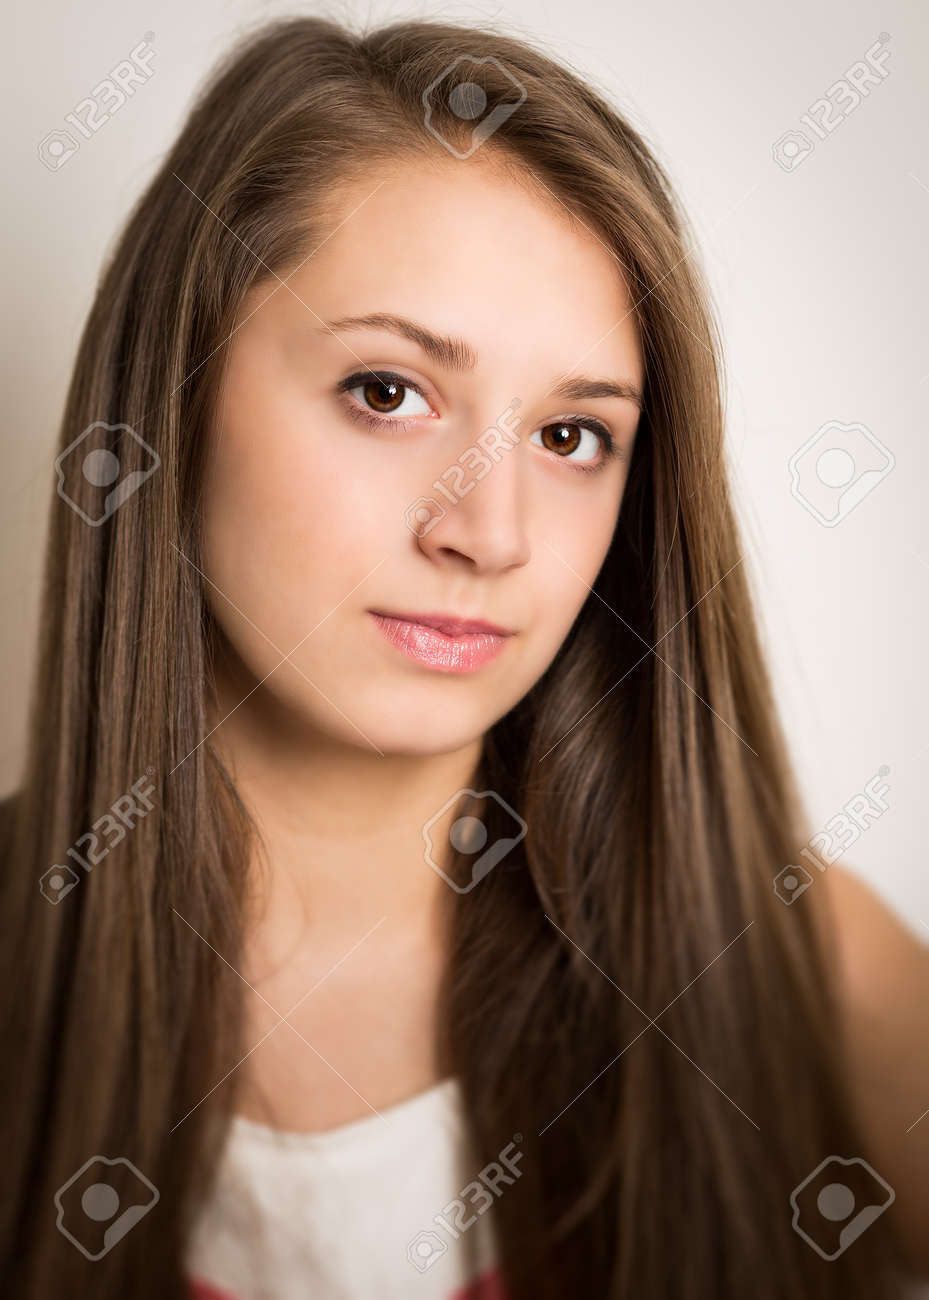 Seer's Art Spam 2.0  - Page 3 30400068-portrait-of-a-beautiful-young-brunette-teenage-girl-in-a-pink-outfit-with-long-brown-hair-and-brown-